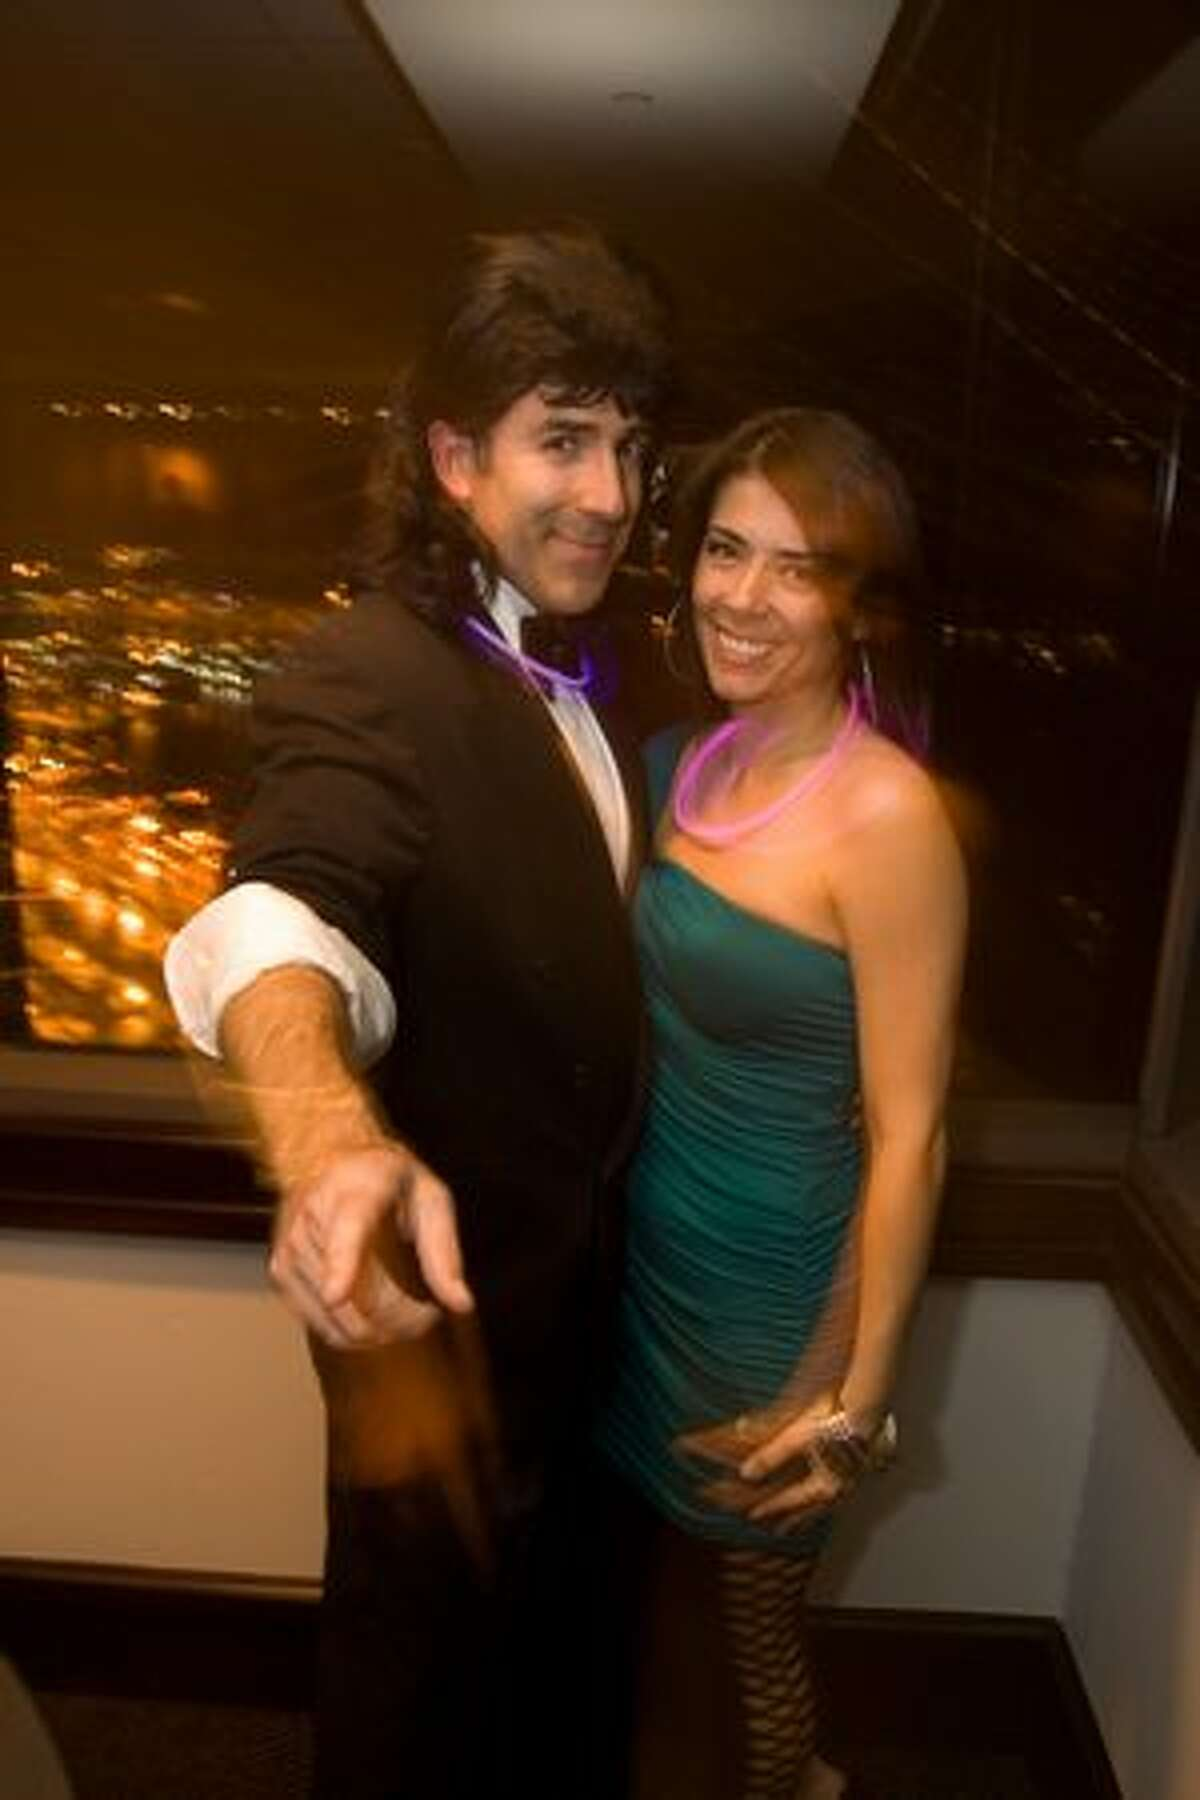 Michael Lee and Stacy Soldo at the '80s Prom Night party at the Columbia Tower Club. (Humberto Martinez / seattlepi.com)